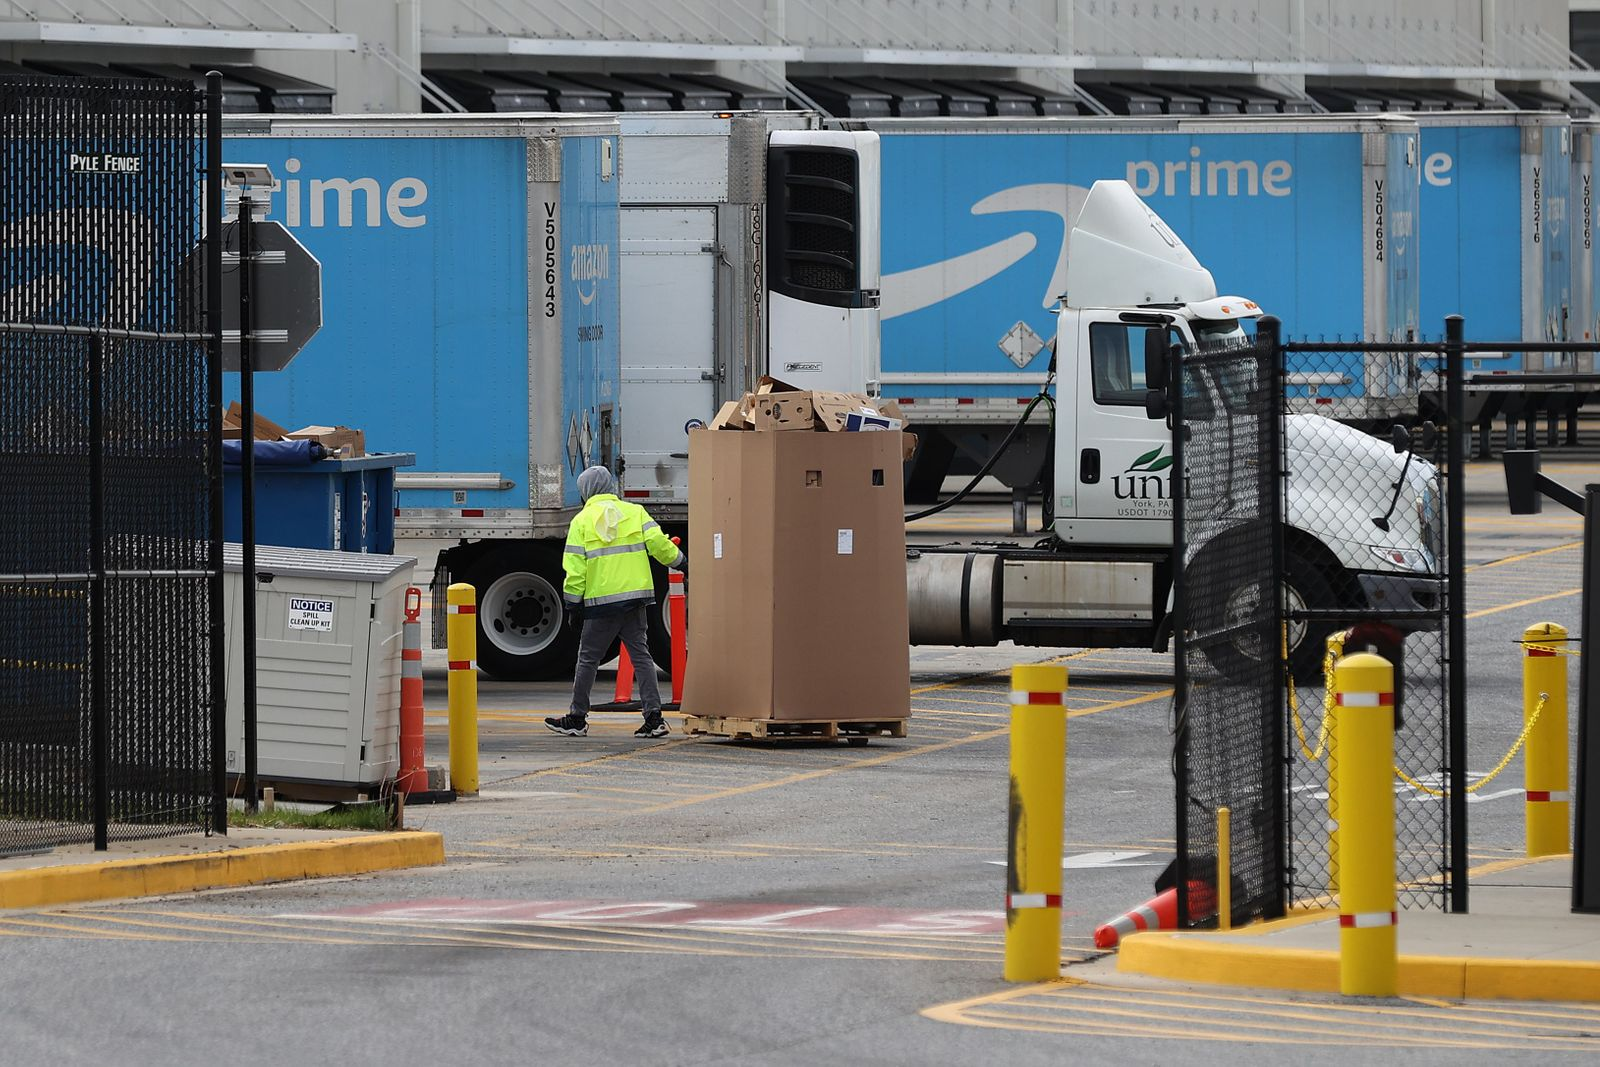 Amazon Continues To Hire As Demand Soars During Coronavirus Shutdown